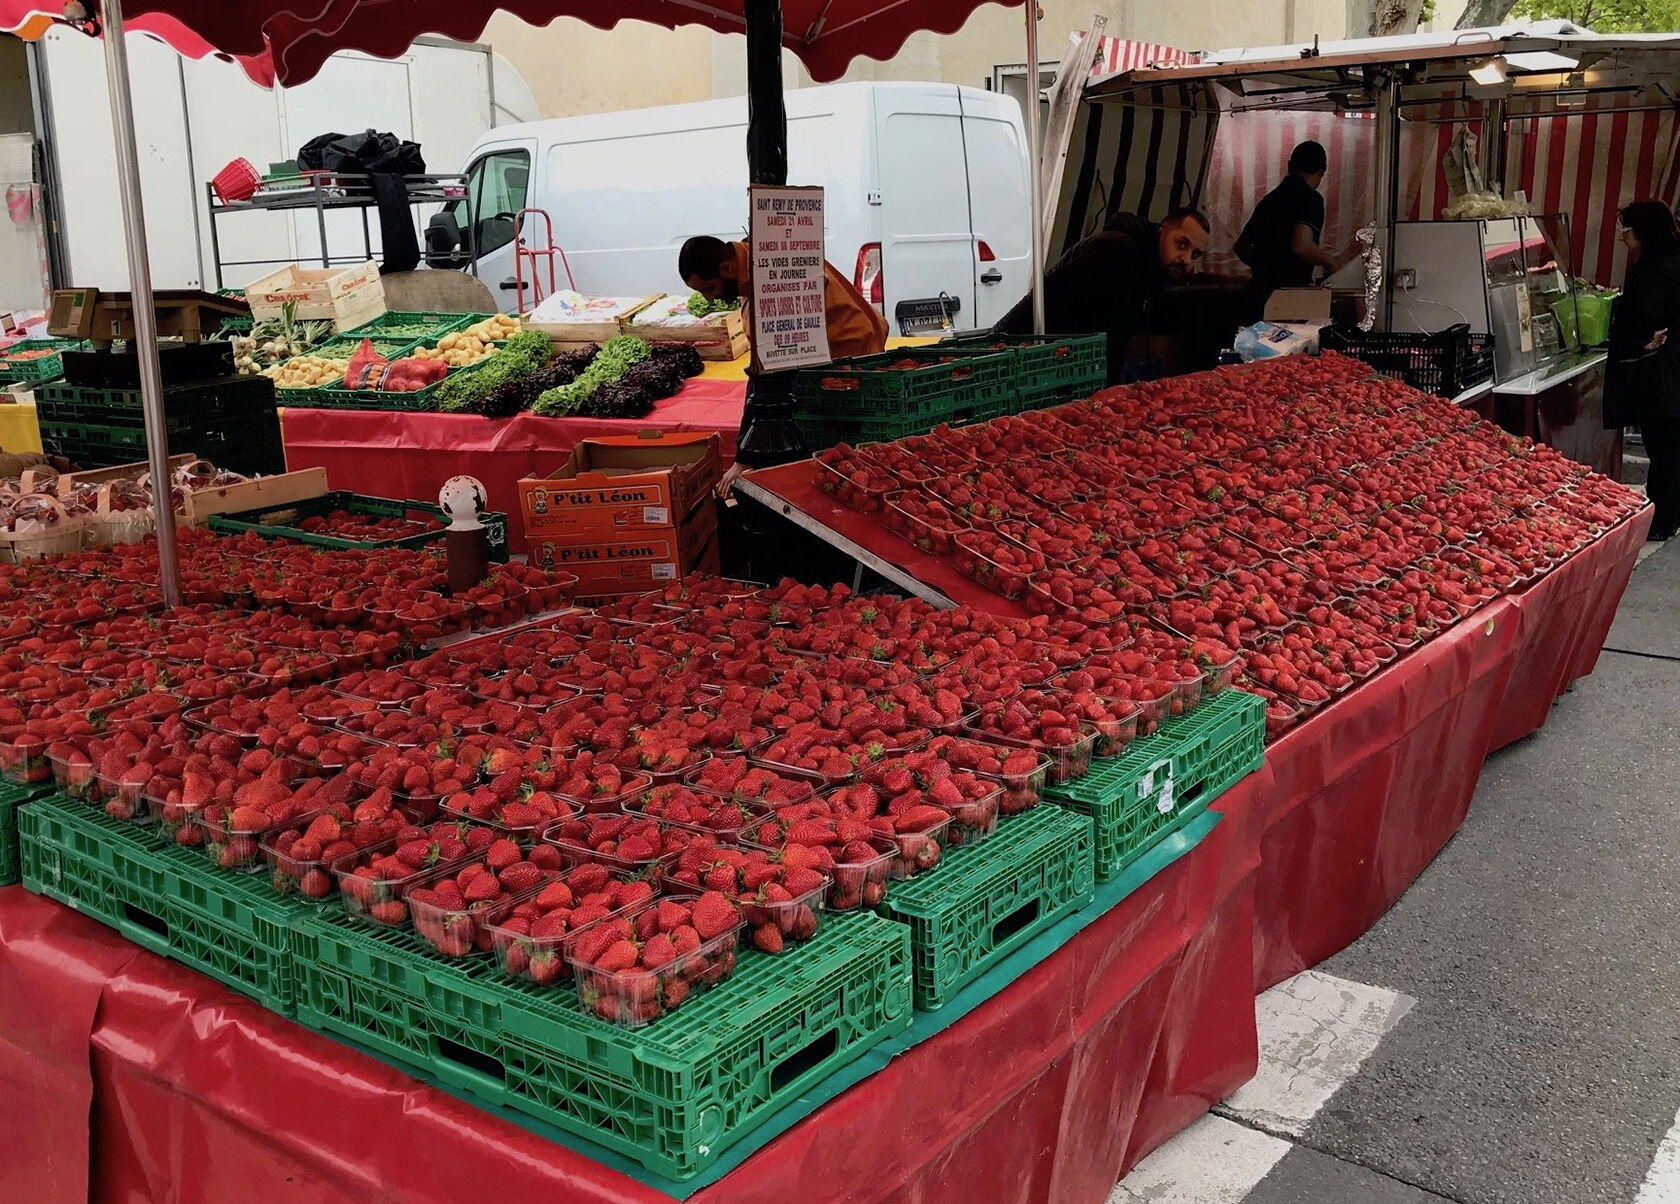 Market strawberries in St Remy de Provence